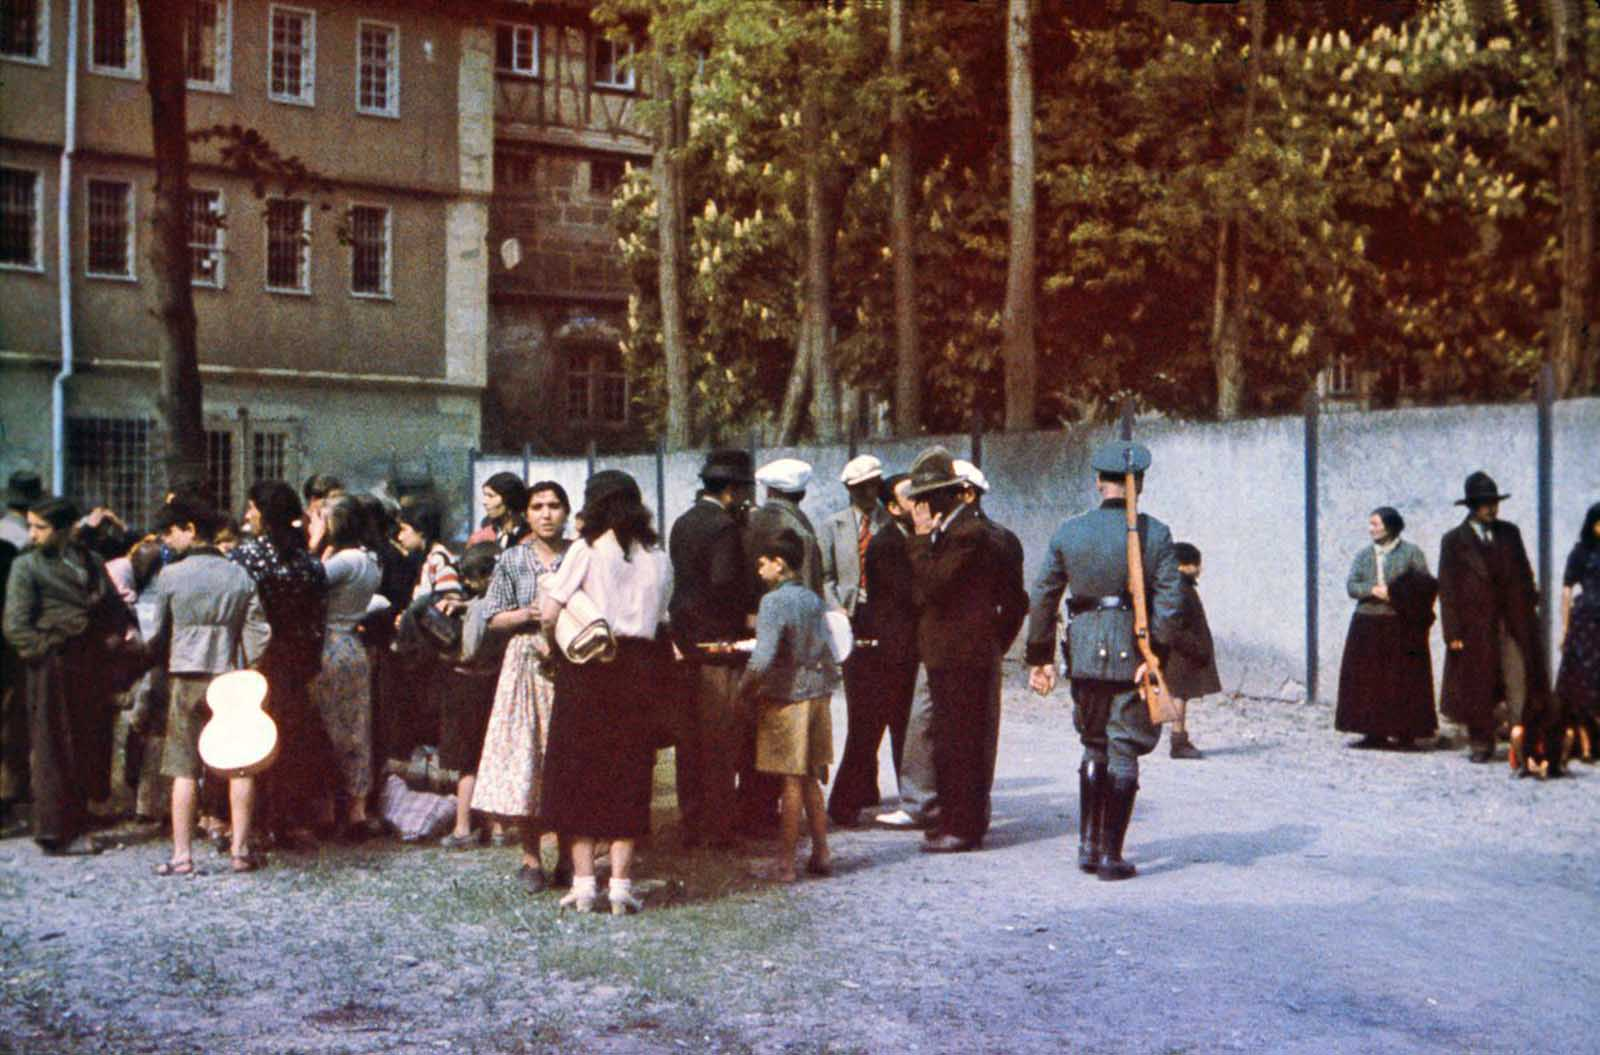 Sinti in the courtyard of Hohenasperg Prison prior to their deportation to camps in Poland. May 22, 1940.